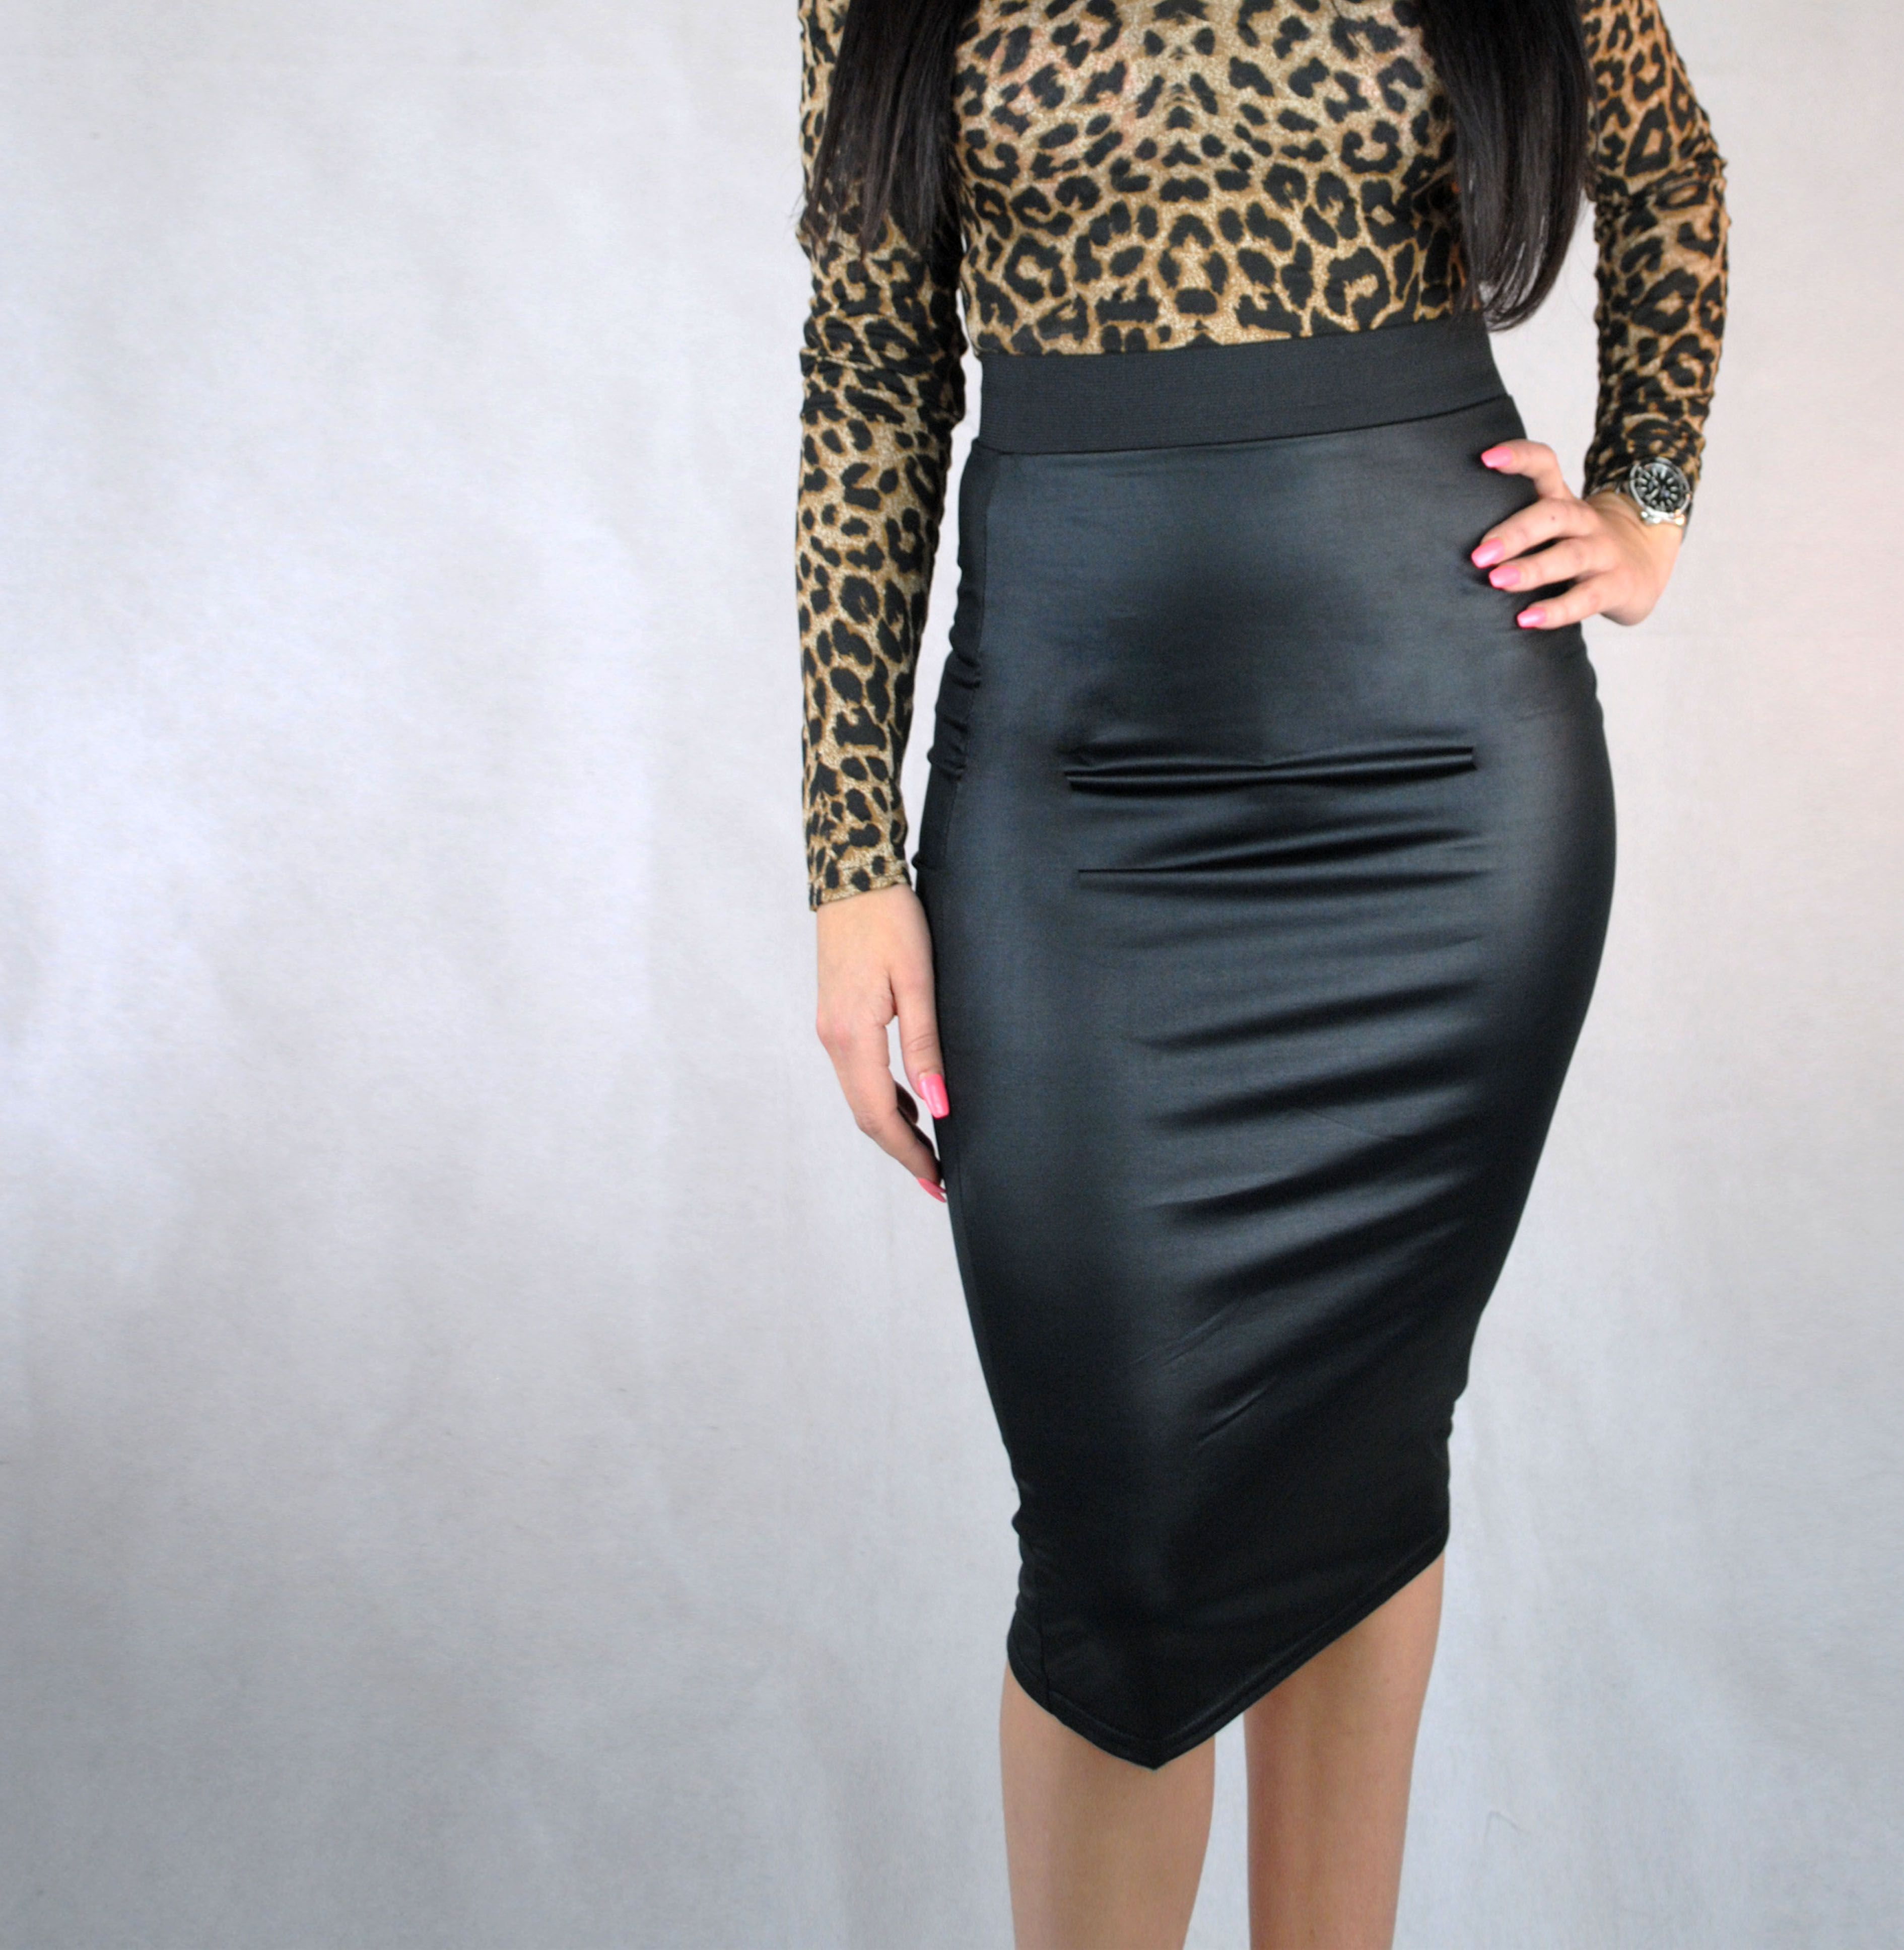 c44b93a2d8 Womens wet look PVC style black bodycon pencil skirt with ...